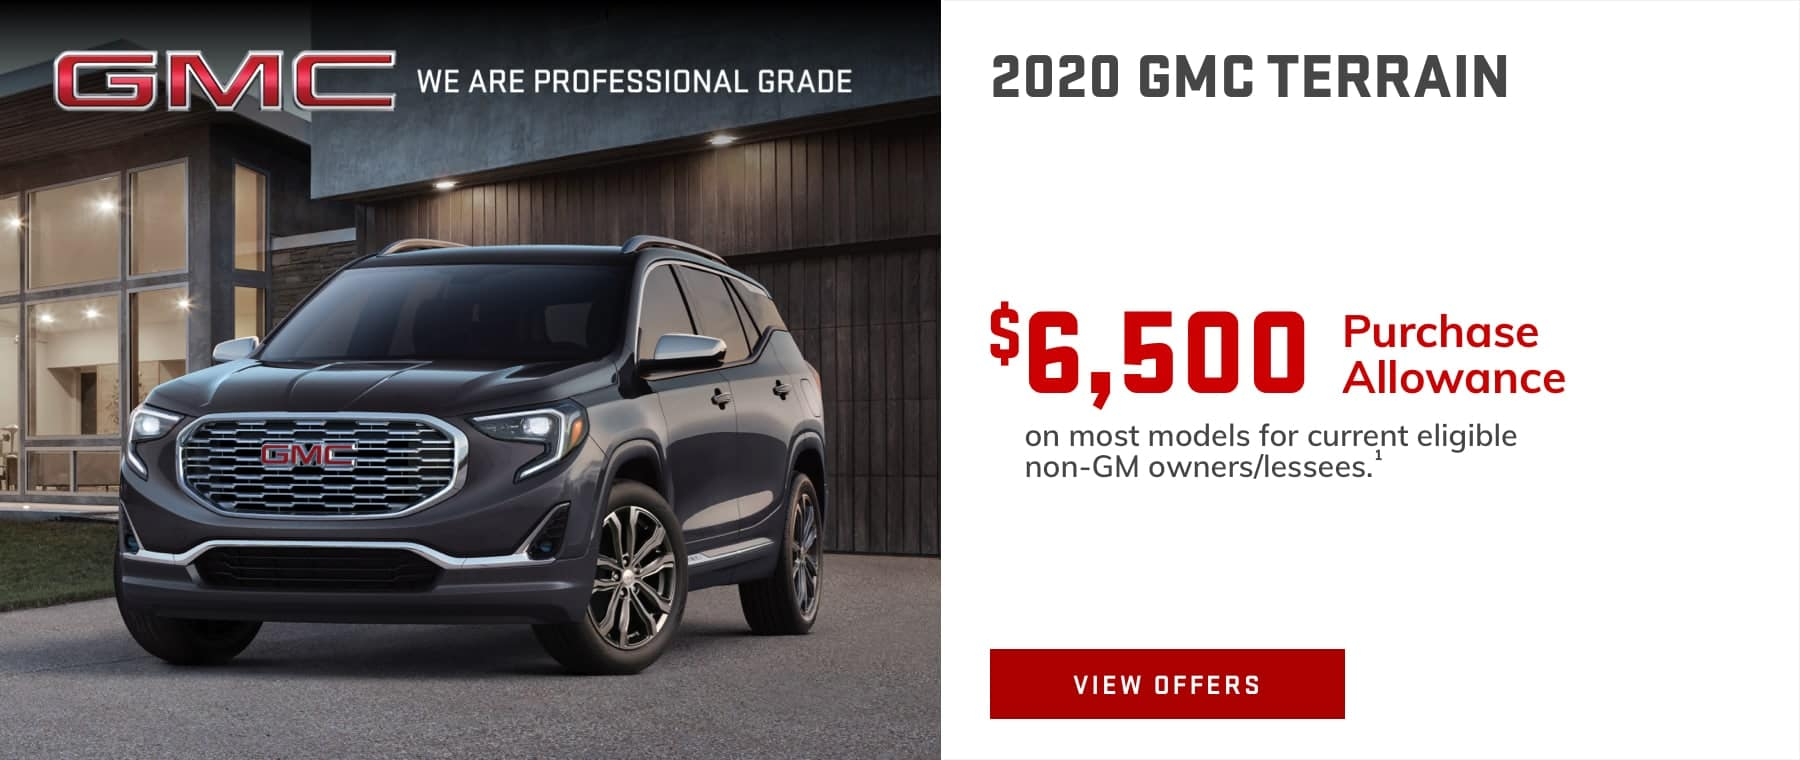 $6,500 Purchase Allowance on most models for current eligible non-GM owners/lessees.